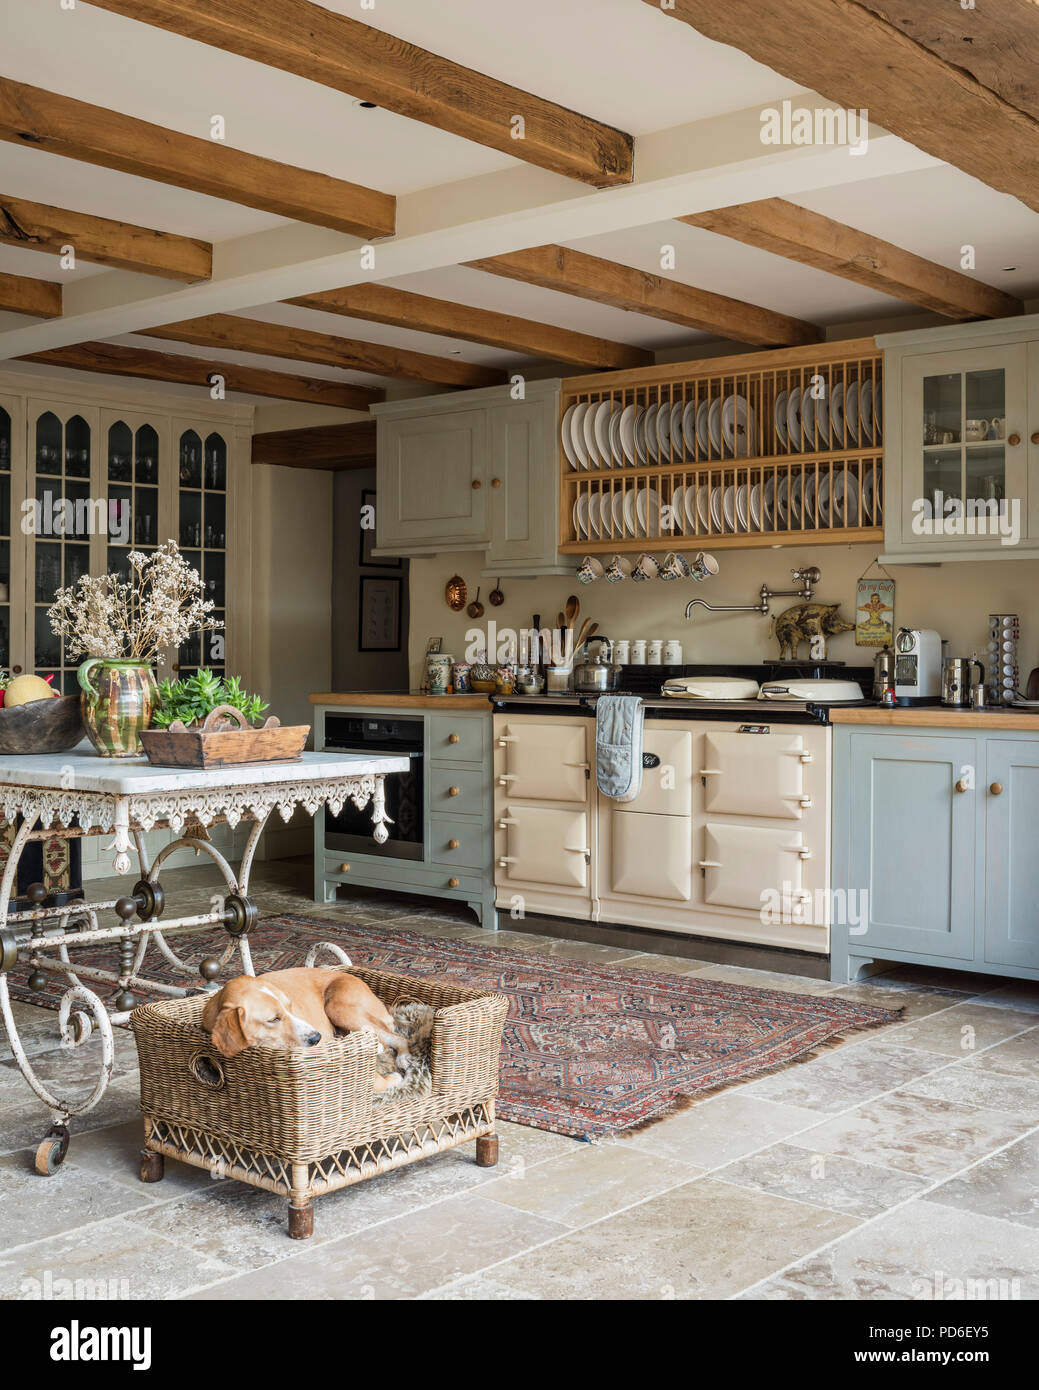 Light blue fitted farmhouse kitchen with plate rack and sleeping dog in basket. Stock Photo